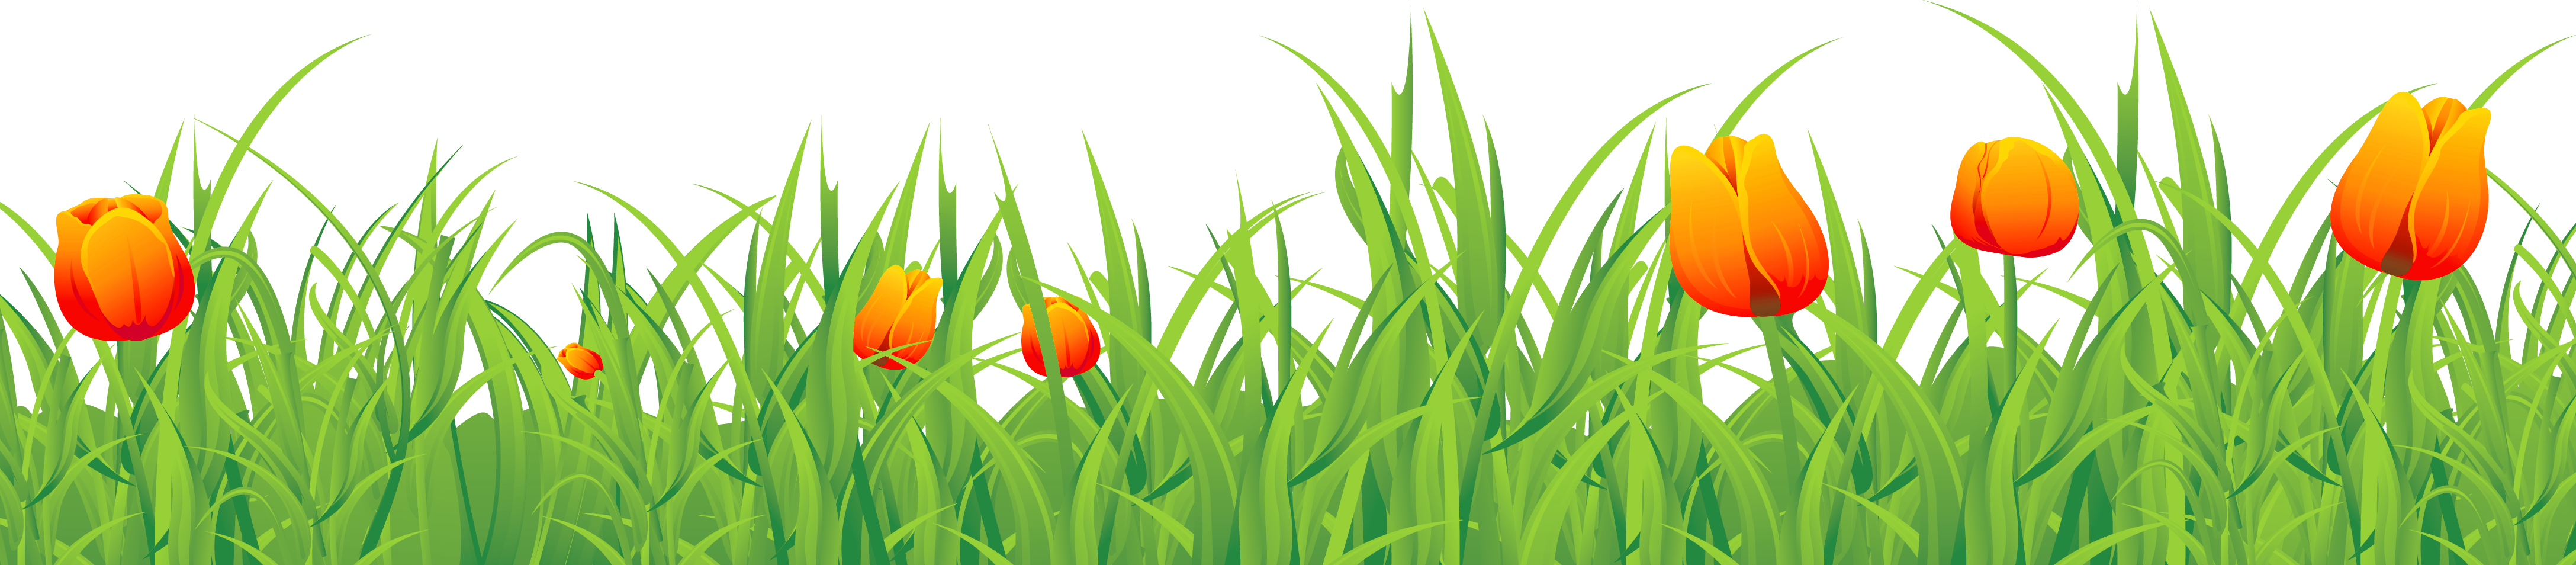 Tulip transparent grass. Ground with tulips png